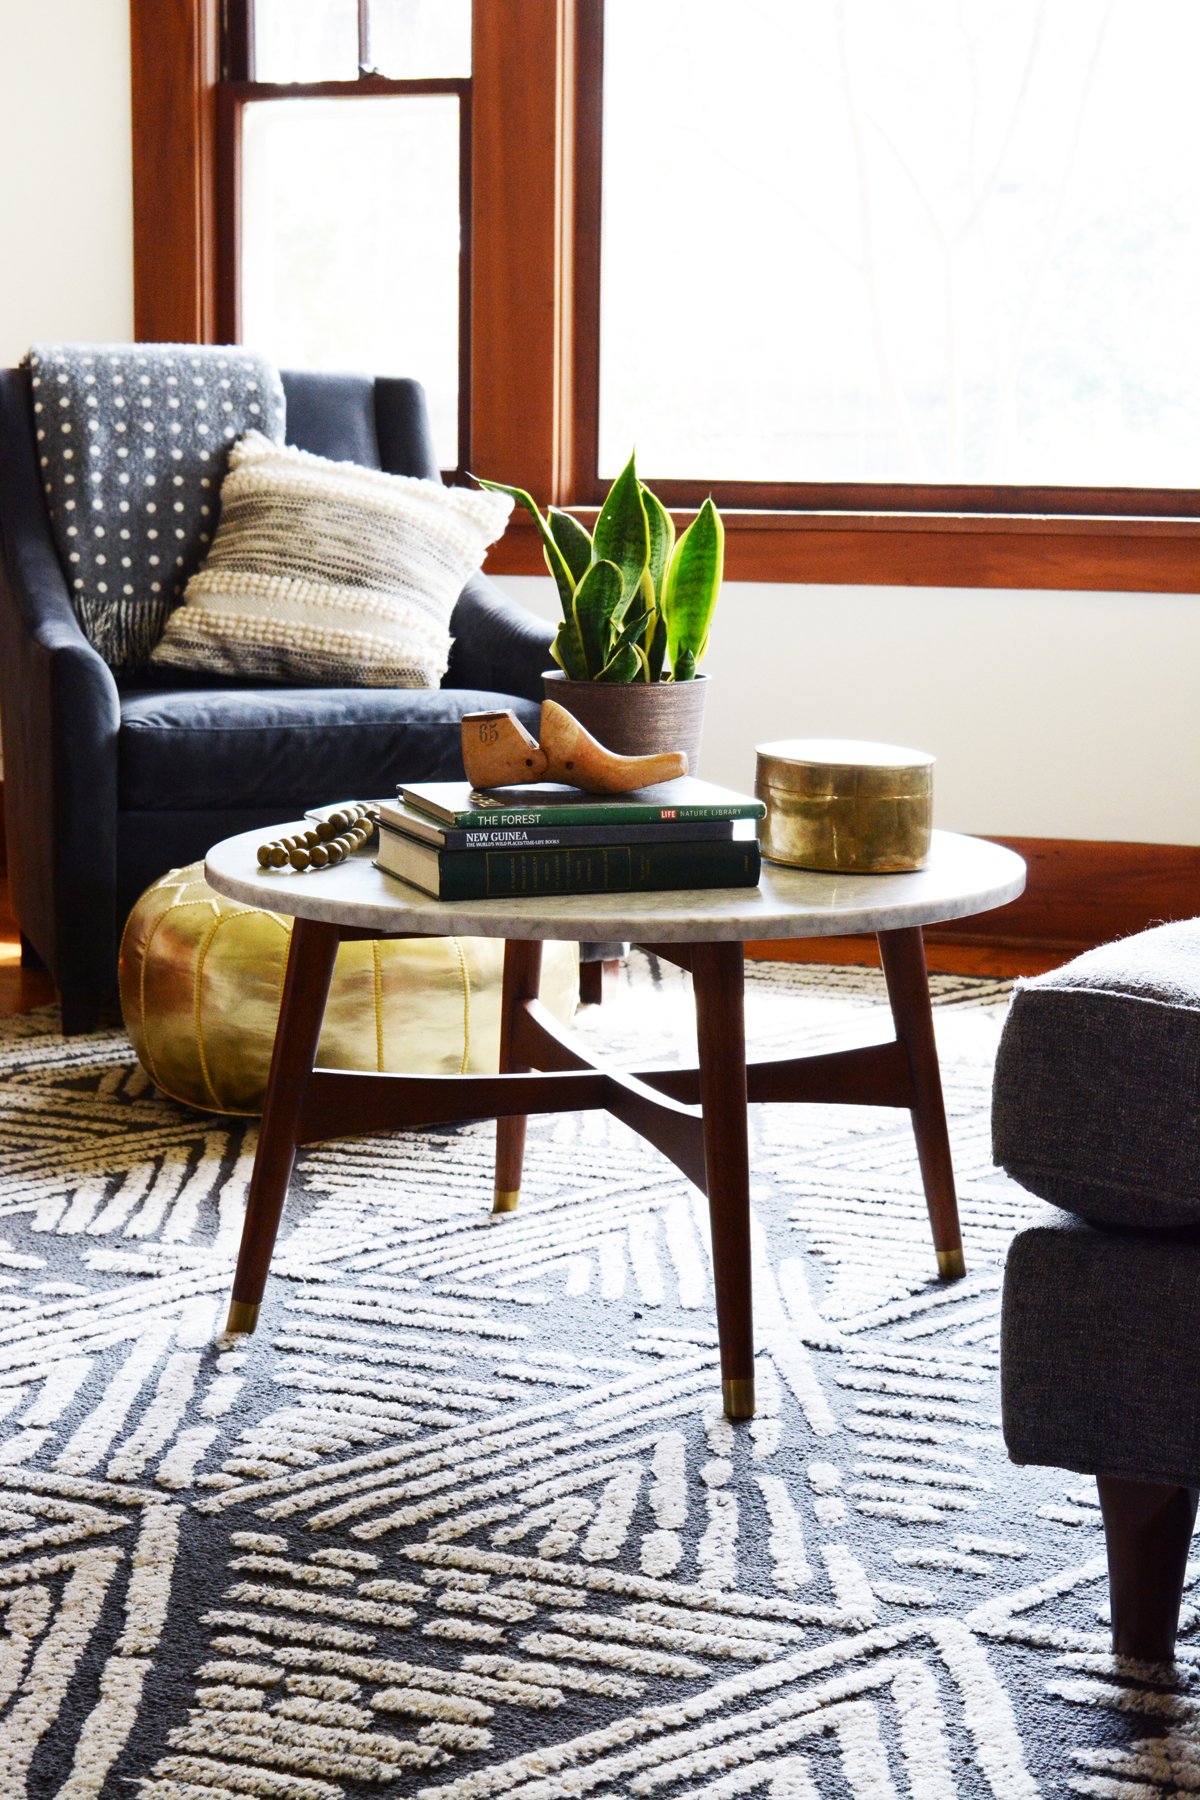 High Quality 24 Stylish Coffee Tables Under $200